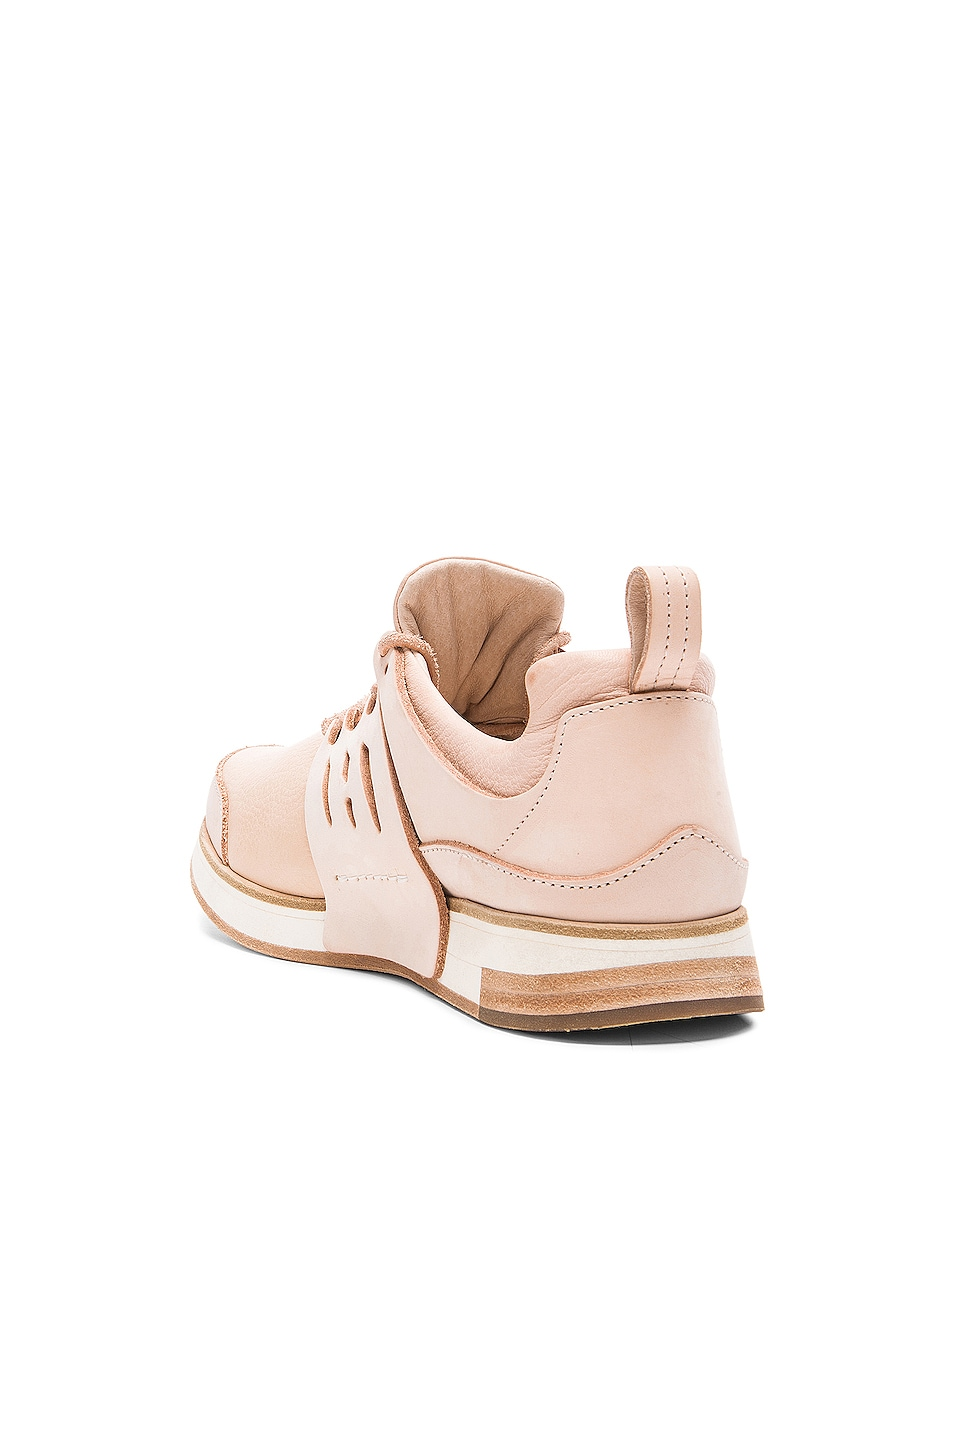 Image 3 of Hender Scheme Manual Industrial Product 12 in Natural